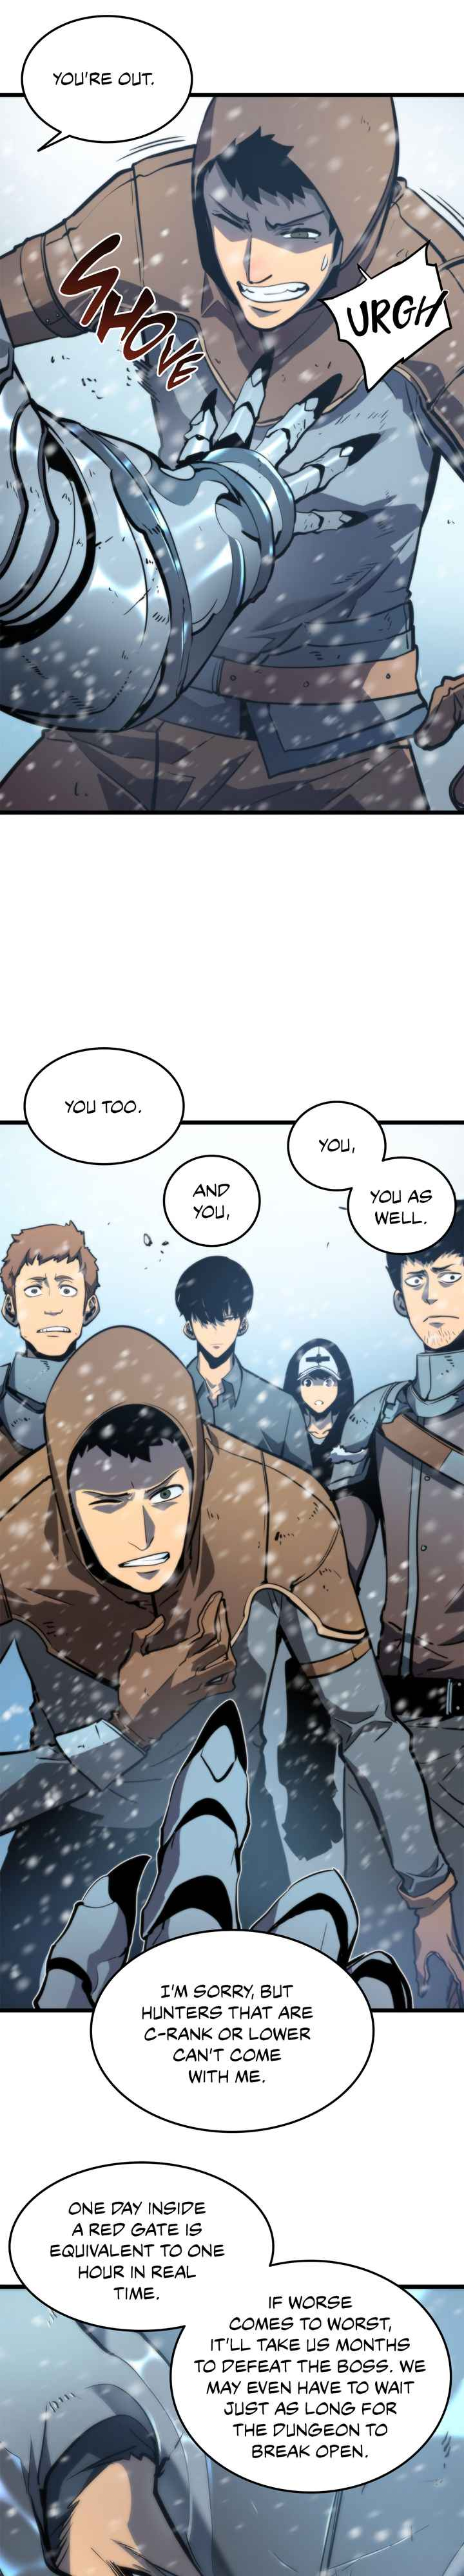 Solo Leveling Chapter 49 Page 6